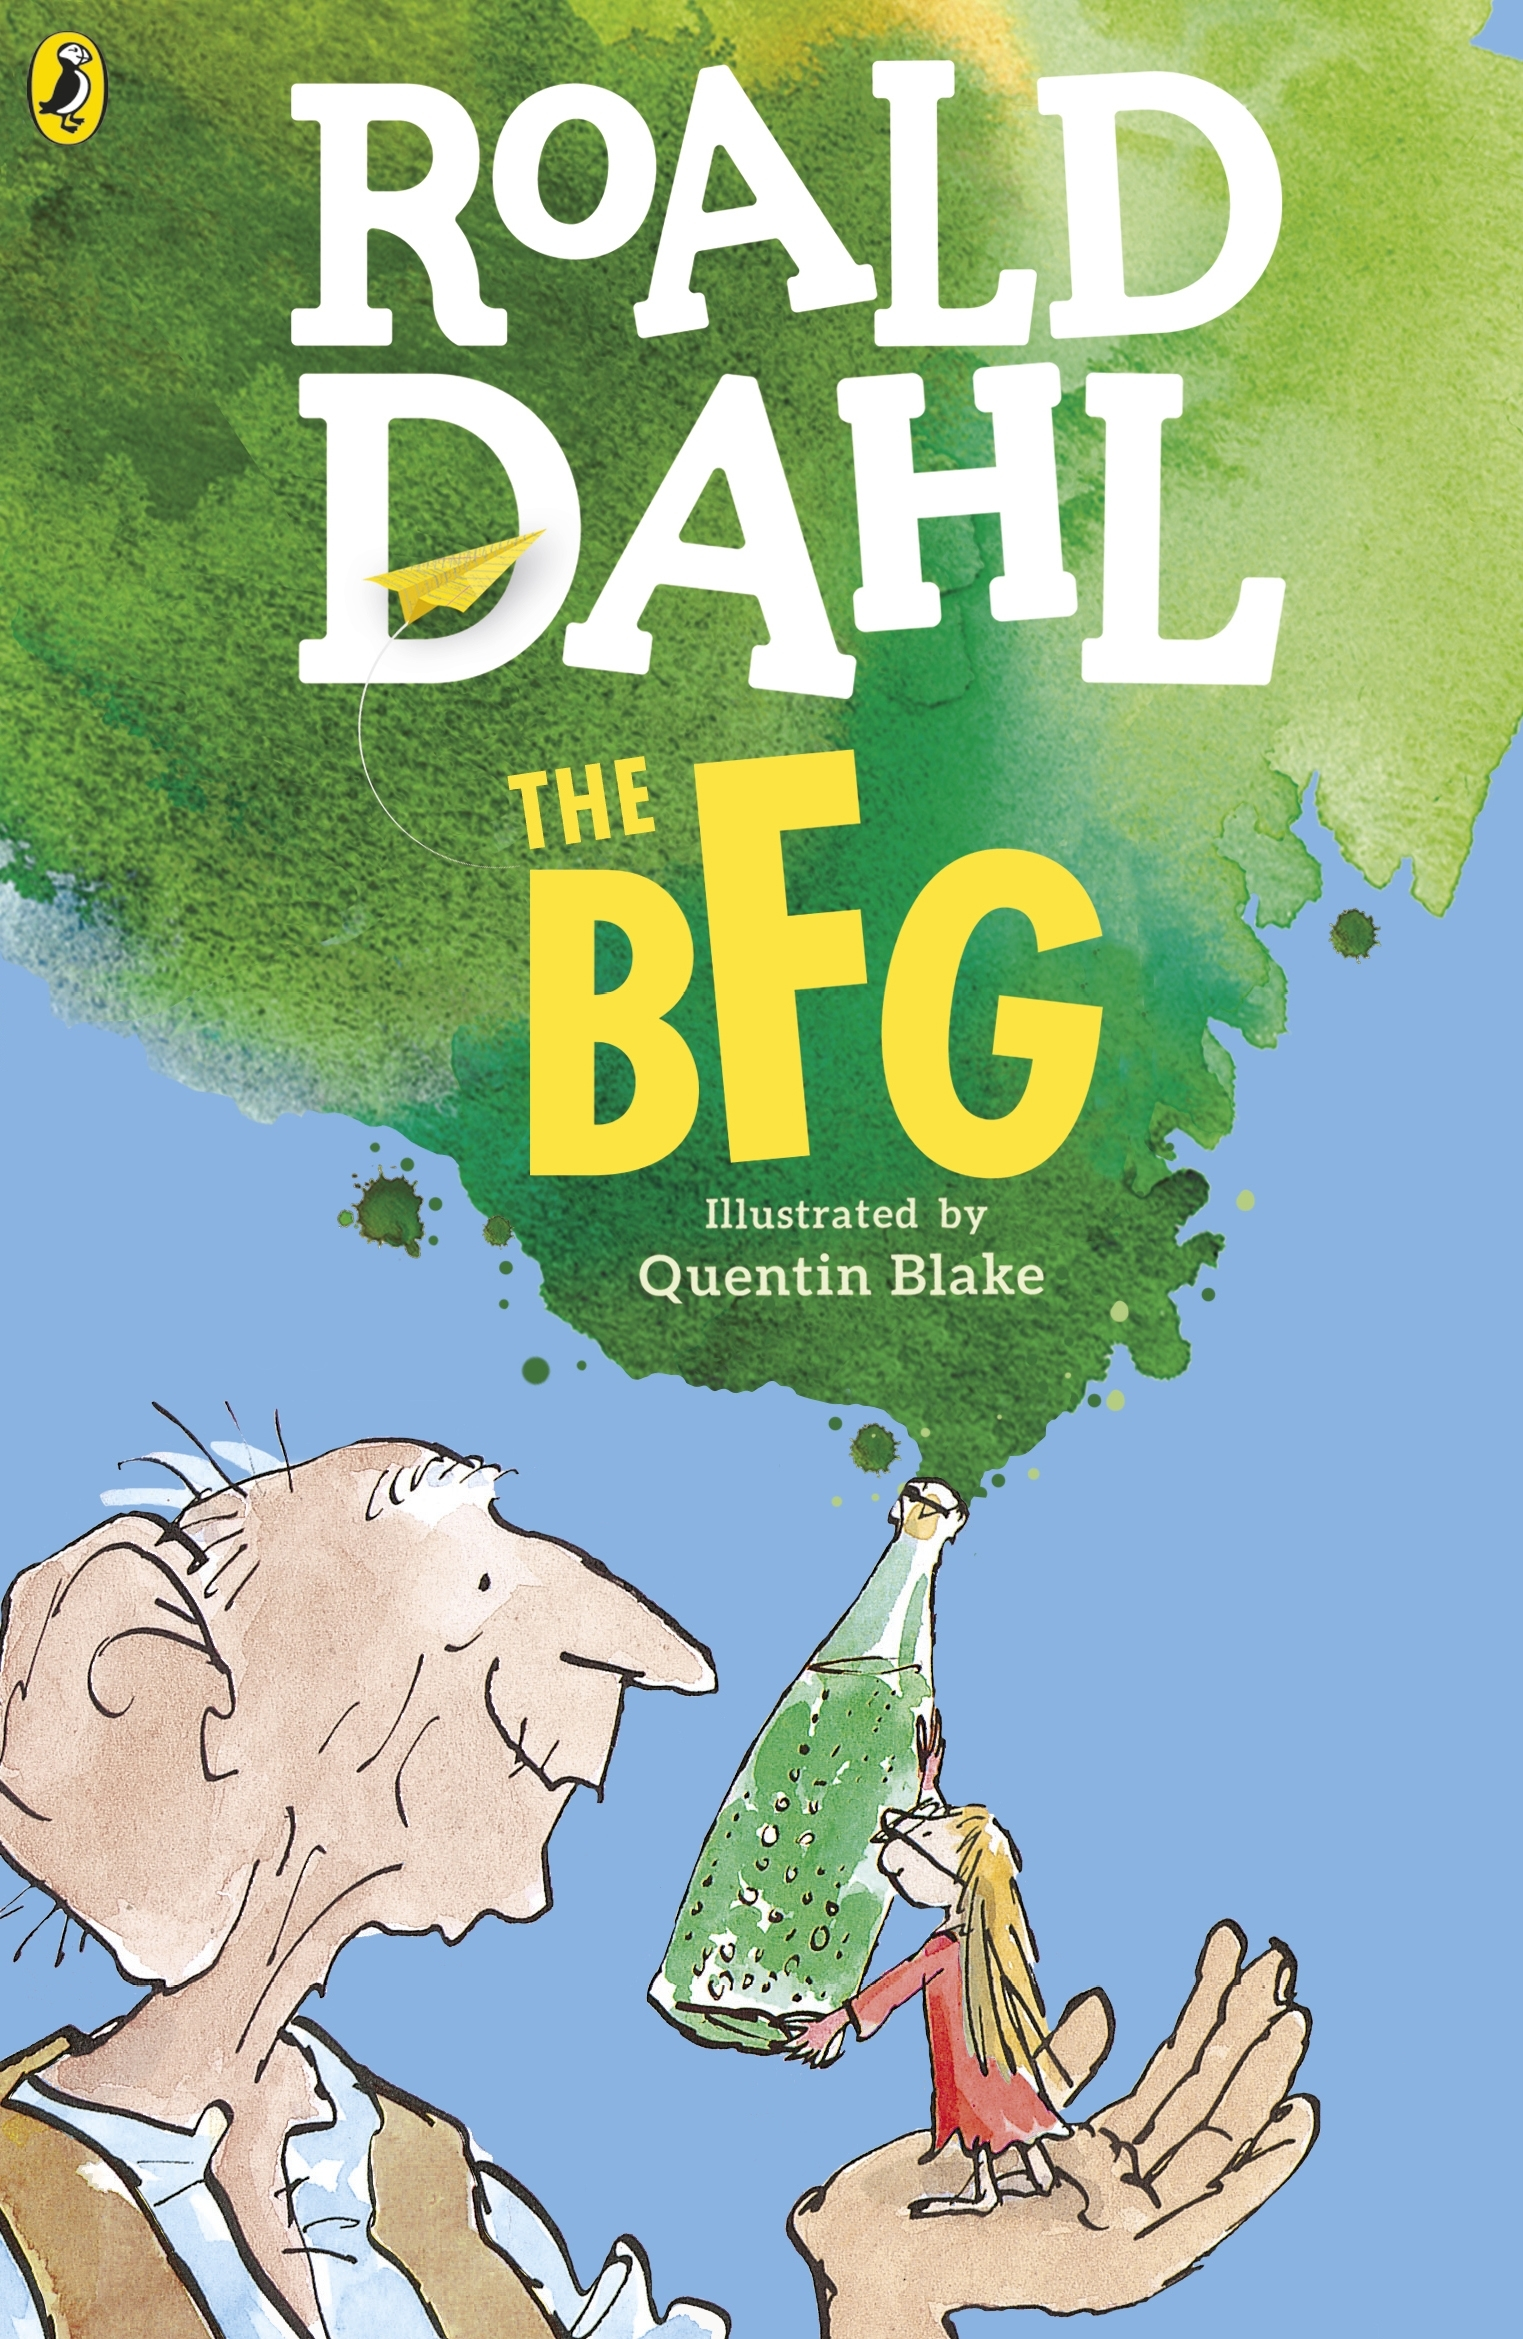 The BFG by Roald Dahl - Penguin Books New Zealand